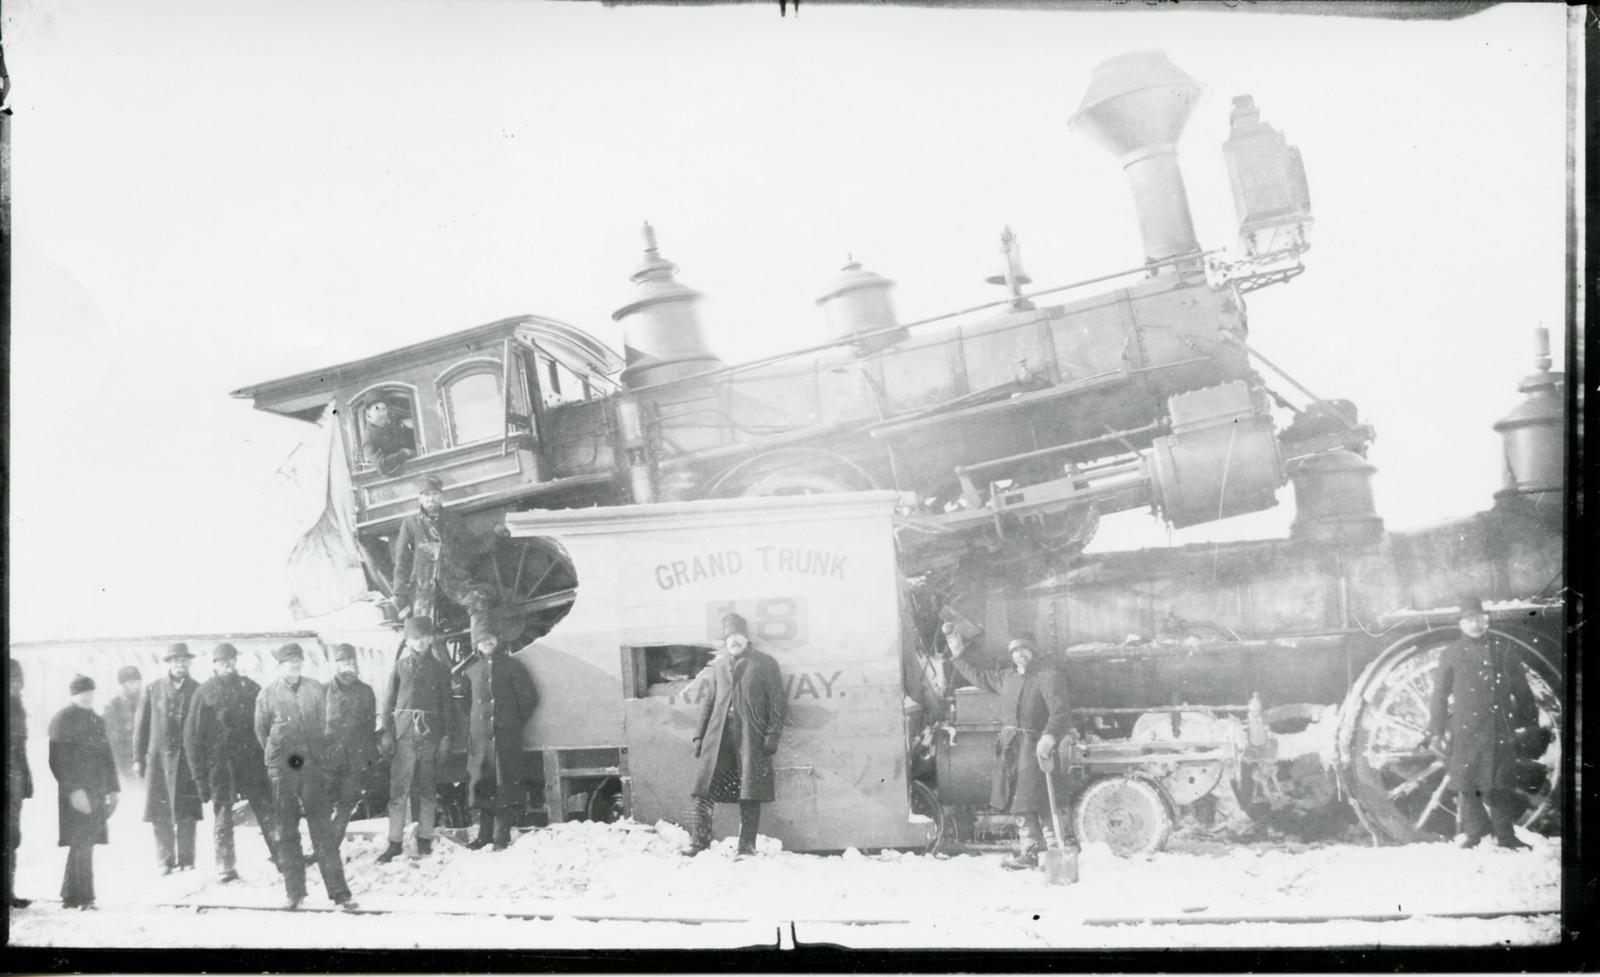 Grand Trunk 18 Railway Engine